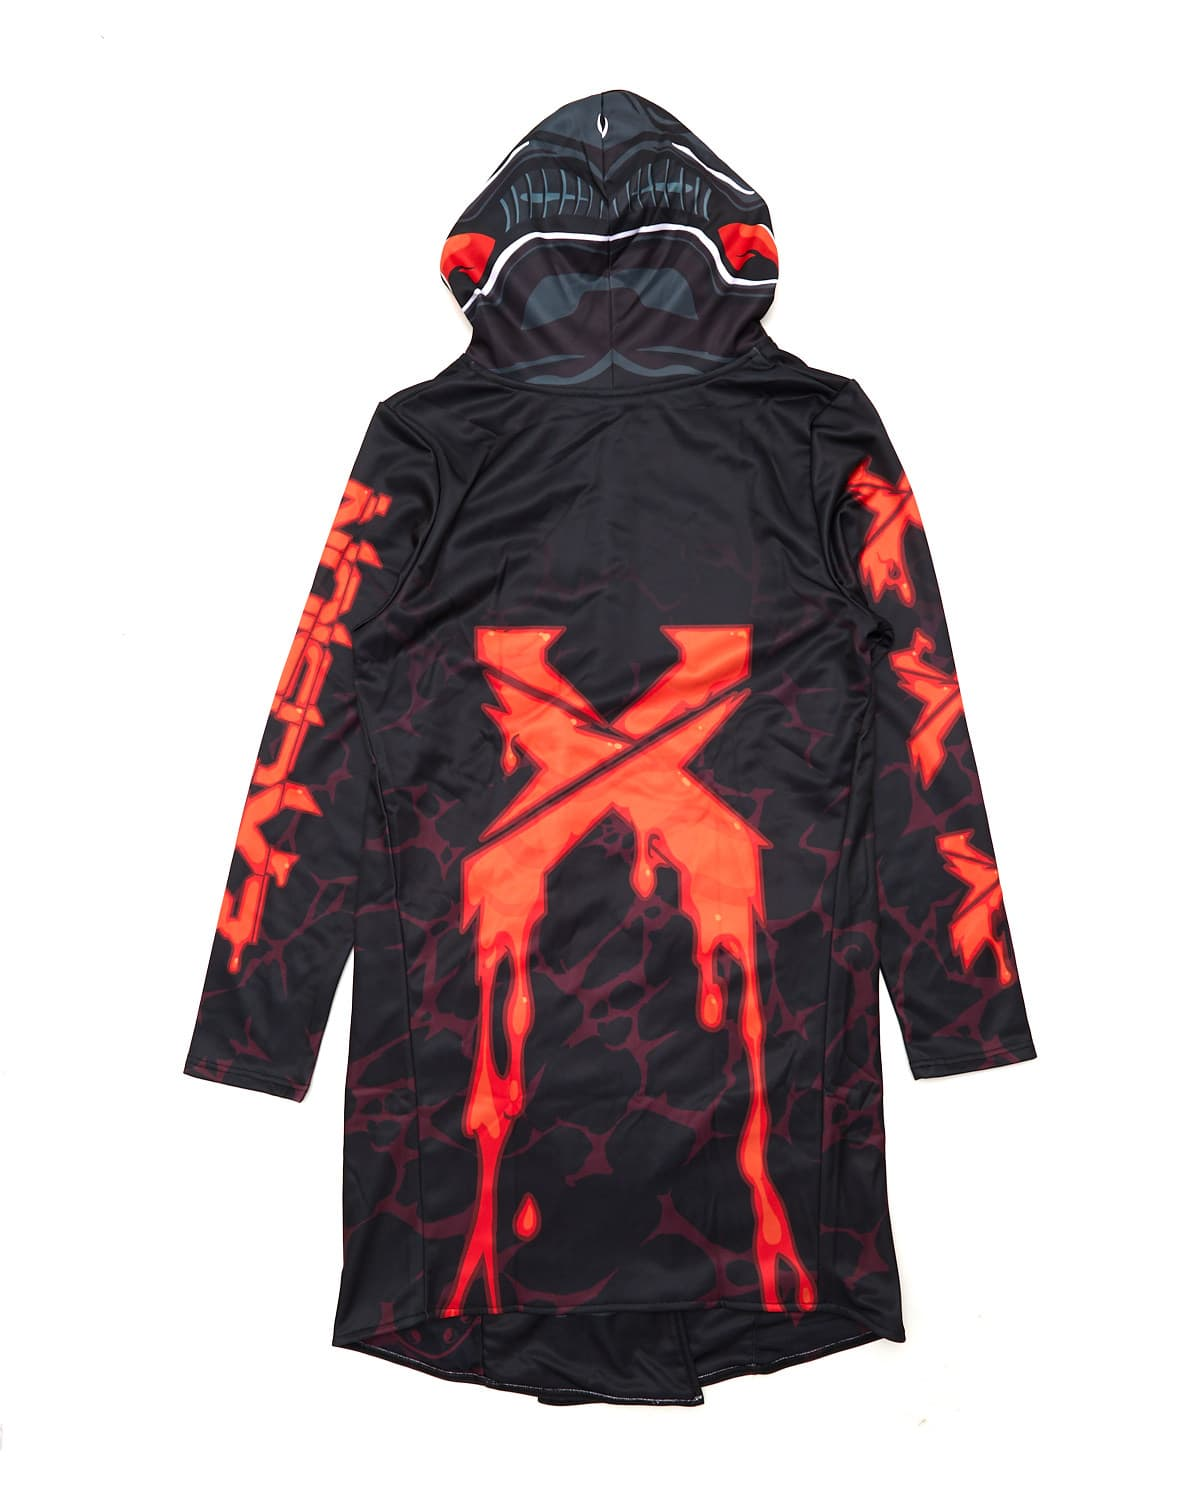 Excision x Scummy Bears Dye Sub Cloak - Red